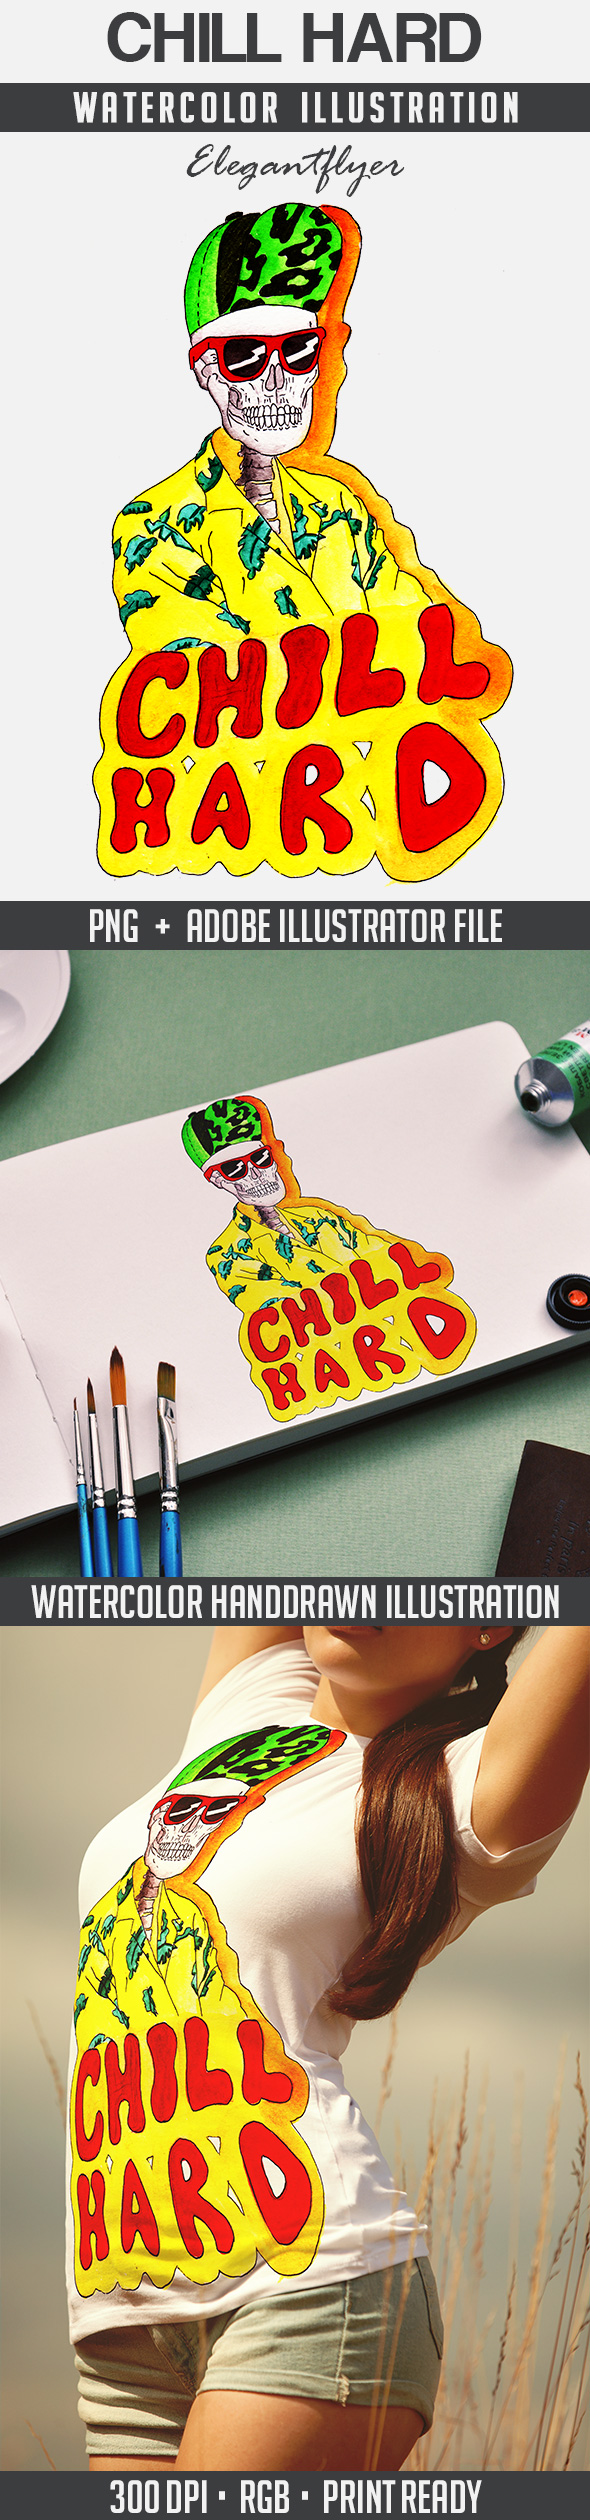 Chill Hard – Premium Stock Illustration